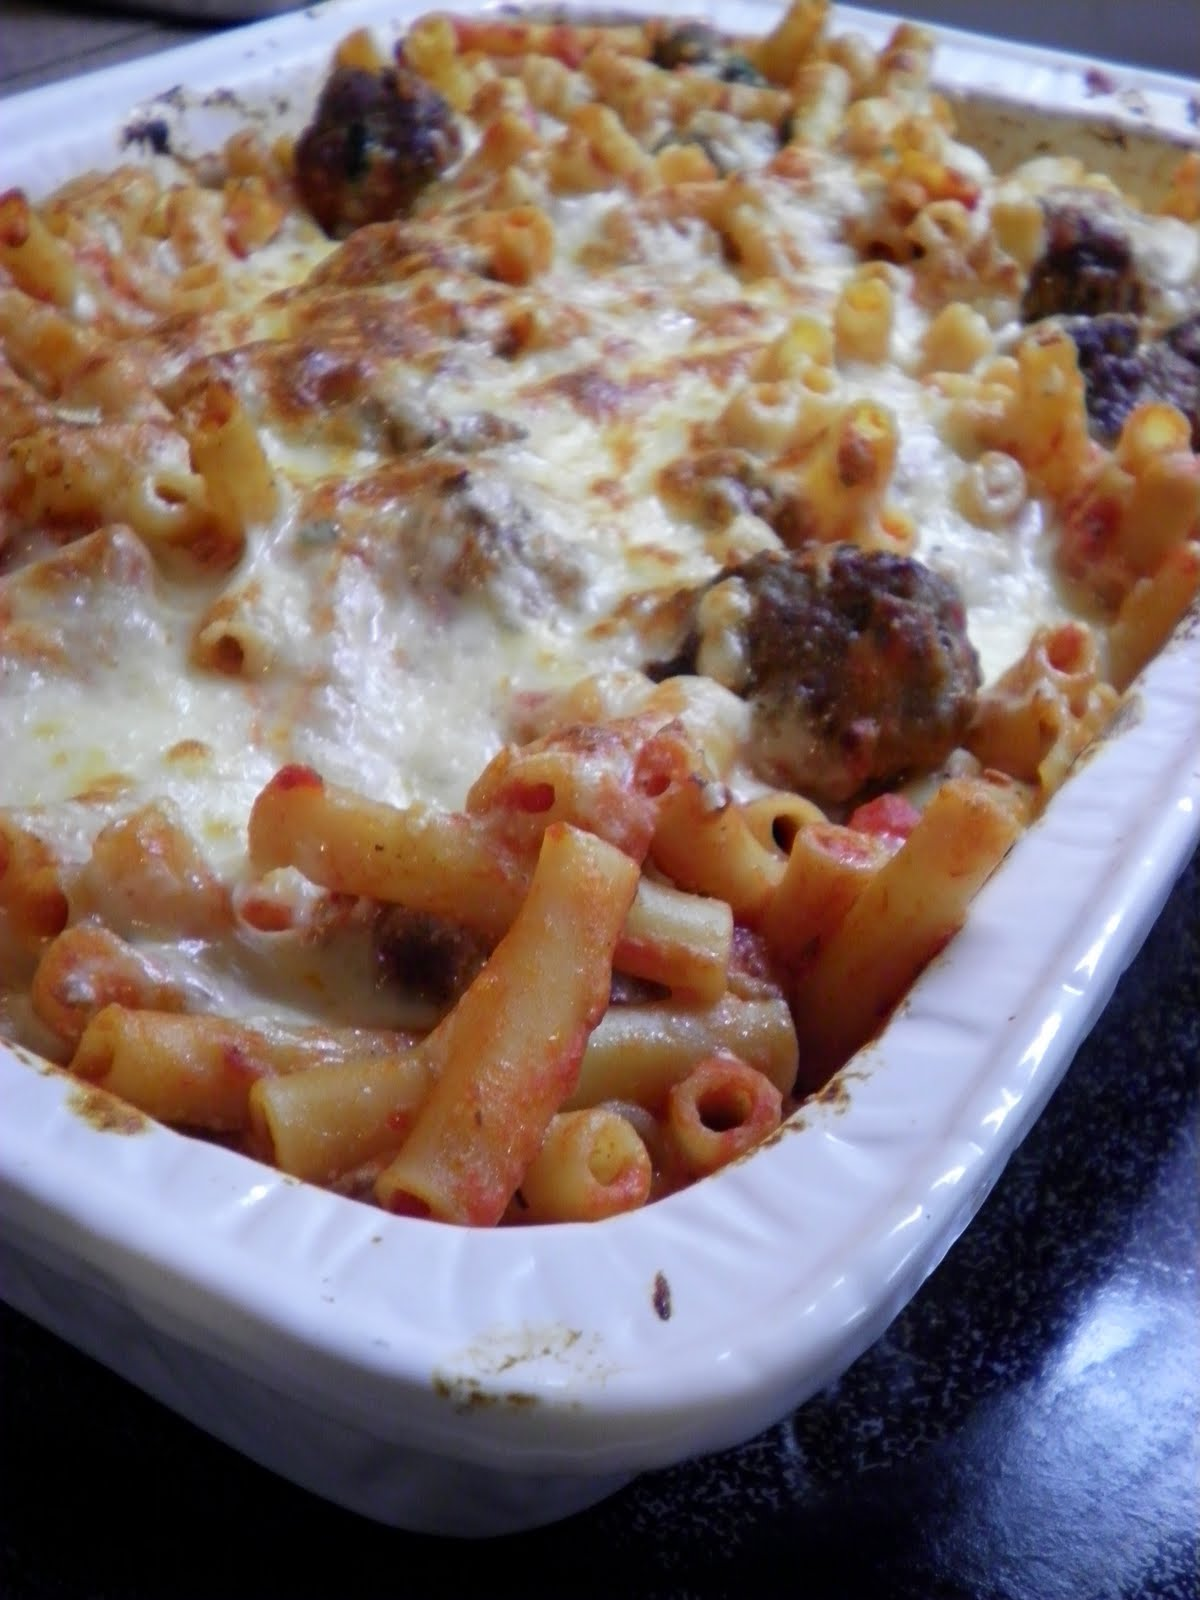 ... baked penne with meatballs recipe dishmaps baked penne with meatballs